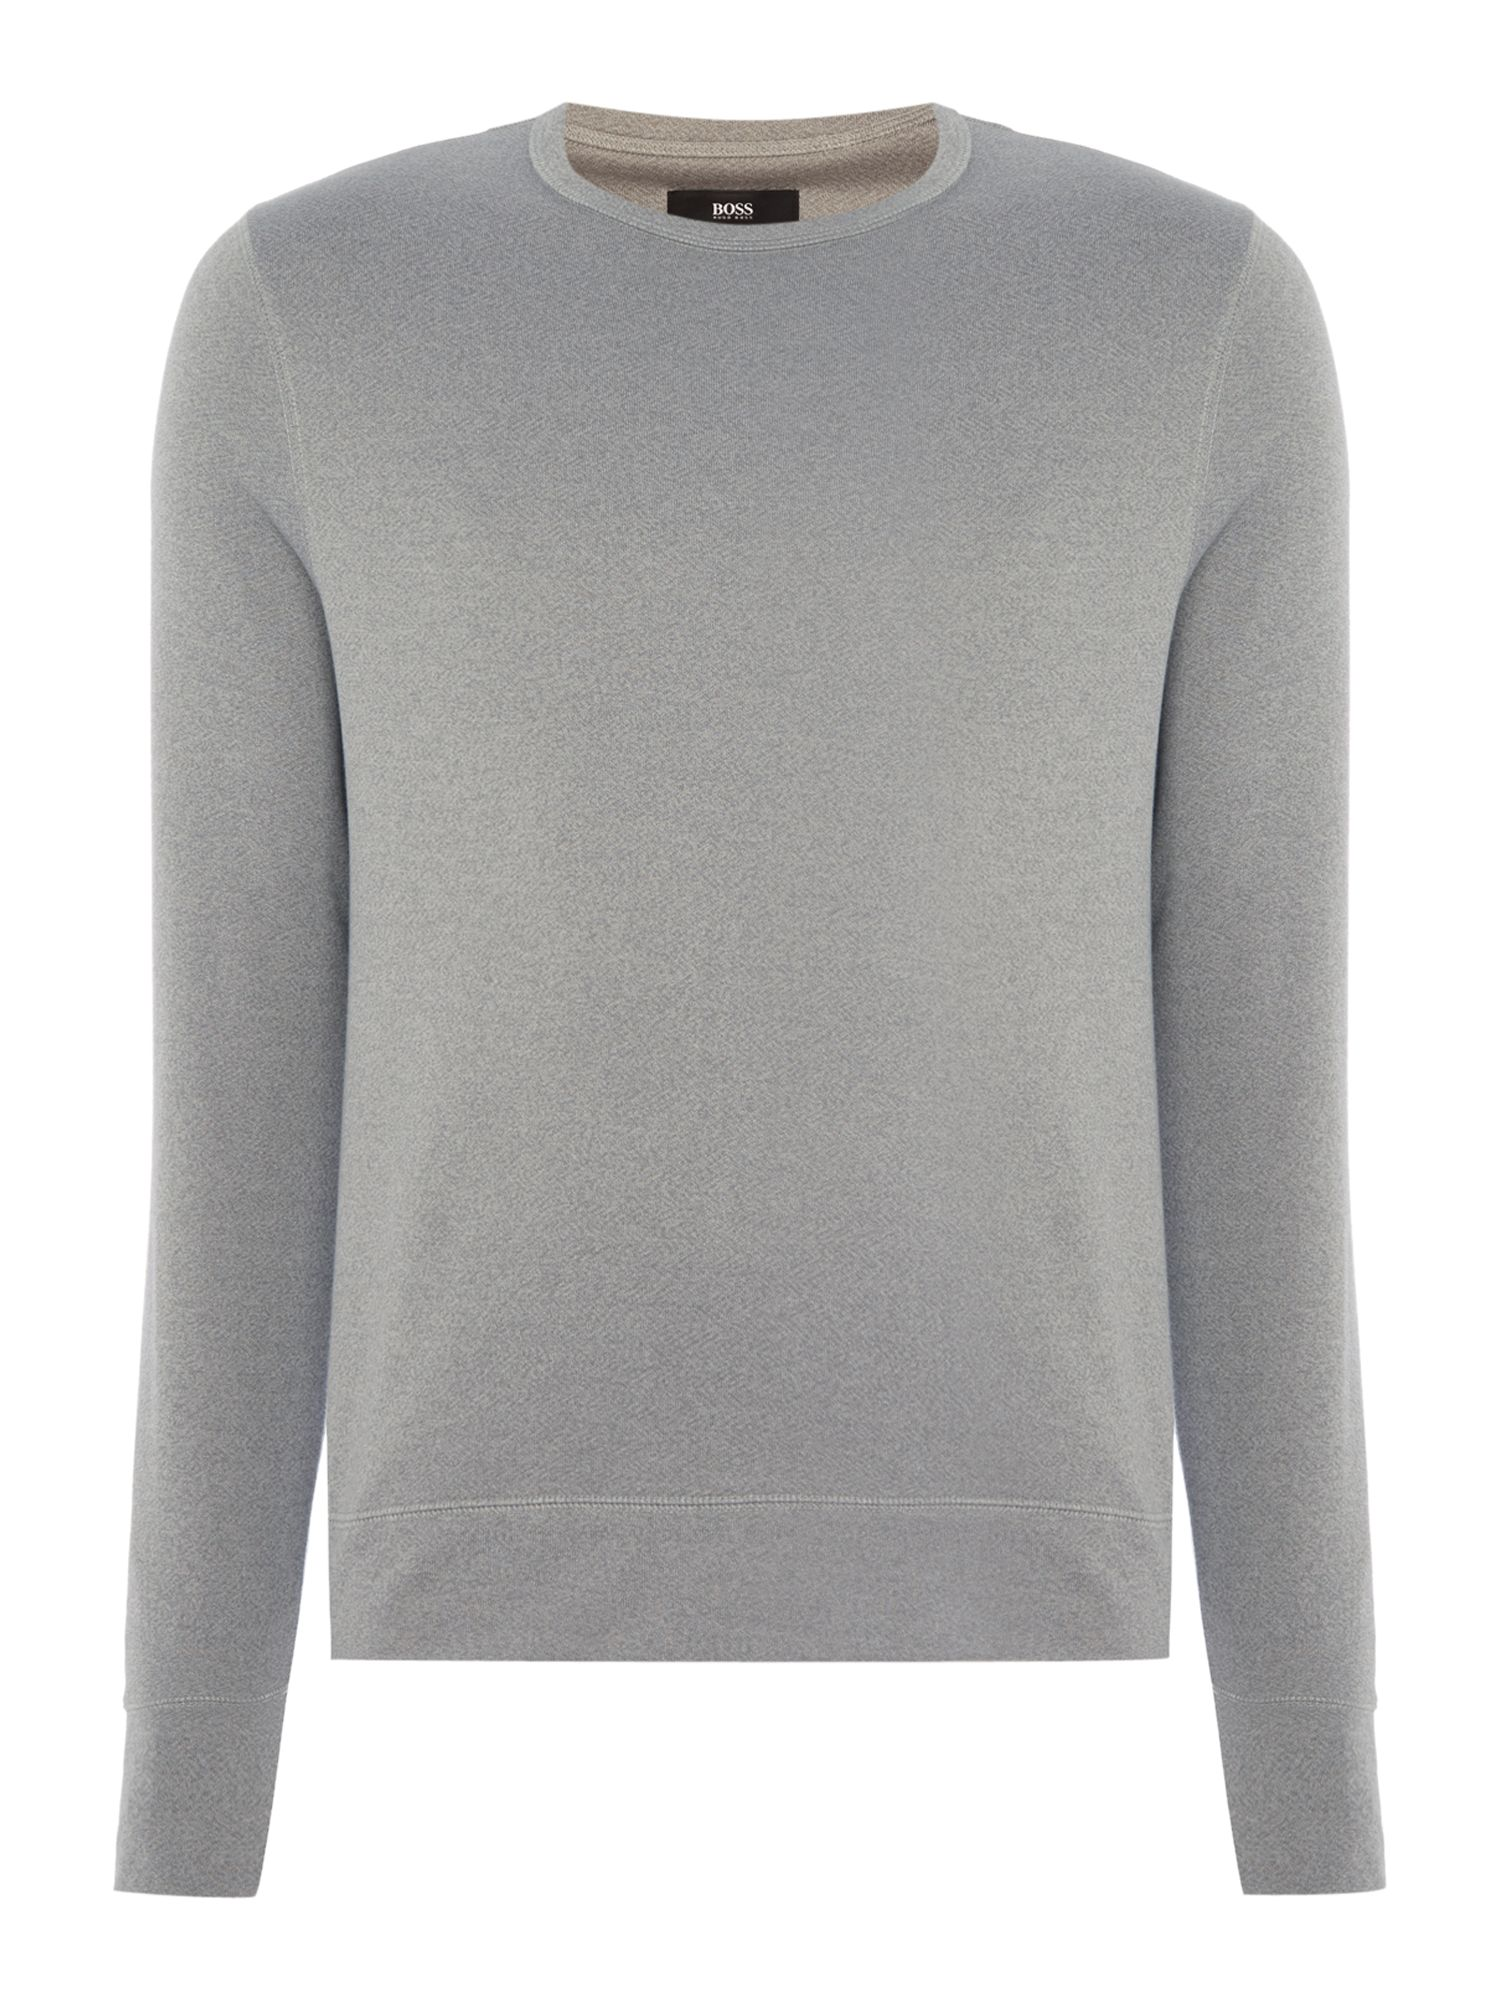 Men's Hugo Boss Skubic 9 slim fit herringbone crew neck sweat top, Light Grey